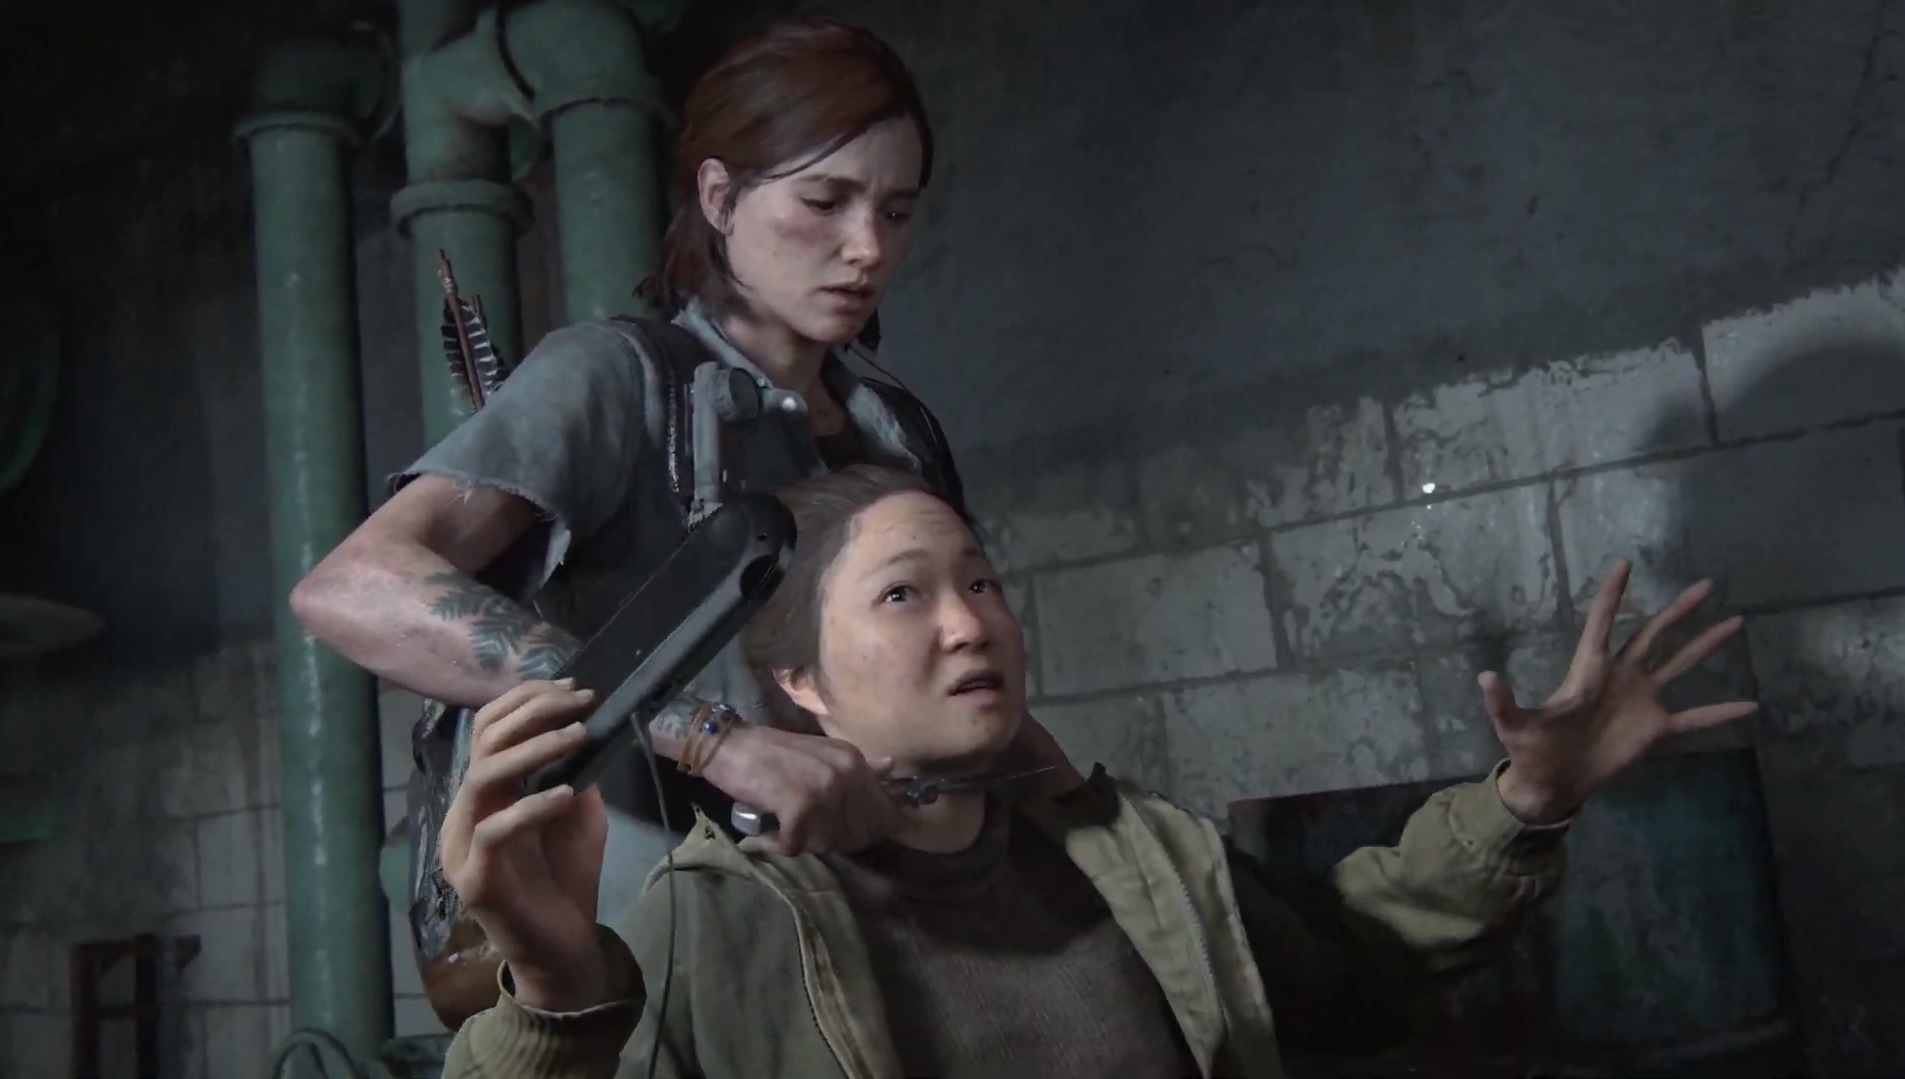 PlayStation Vita still exists in the The Last of Us Part II screenshot